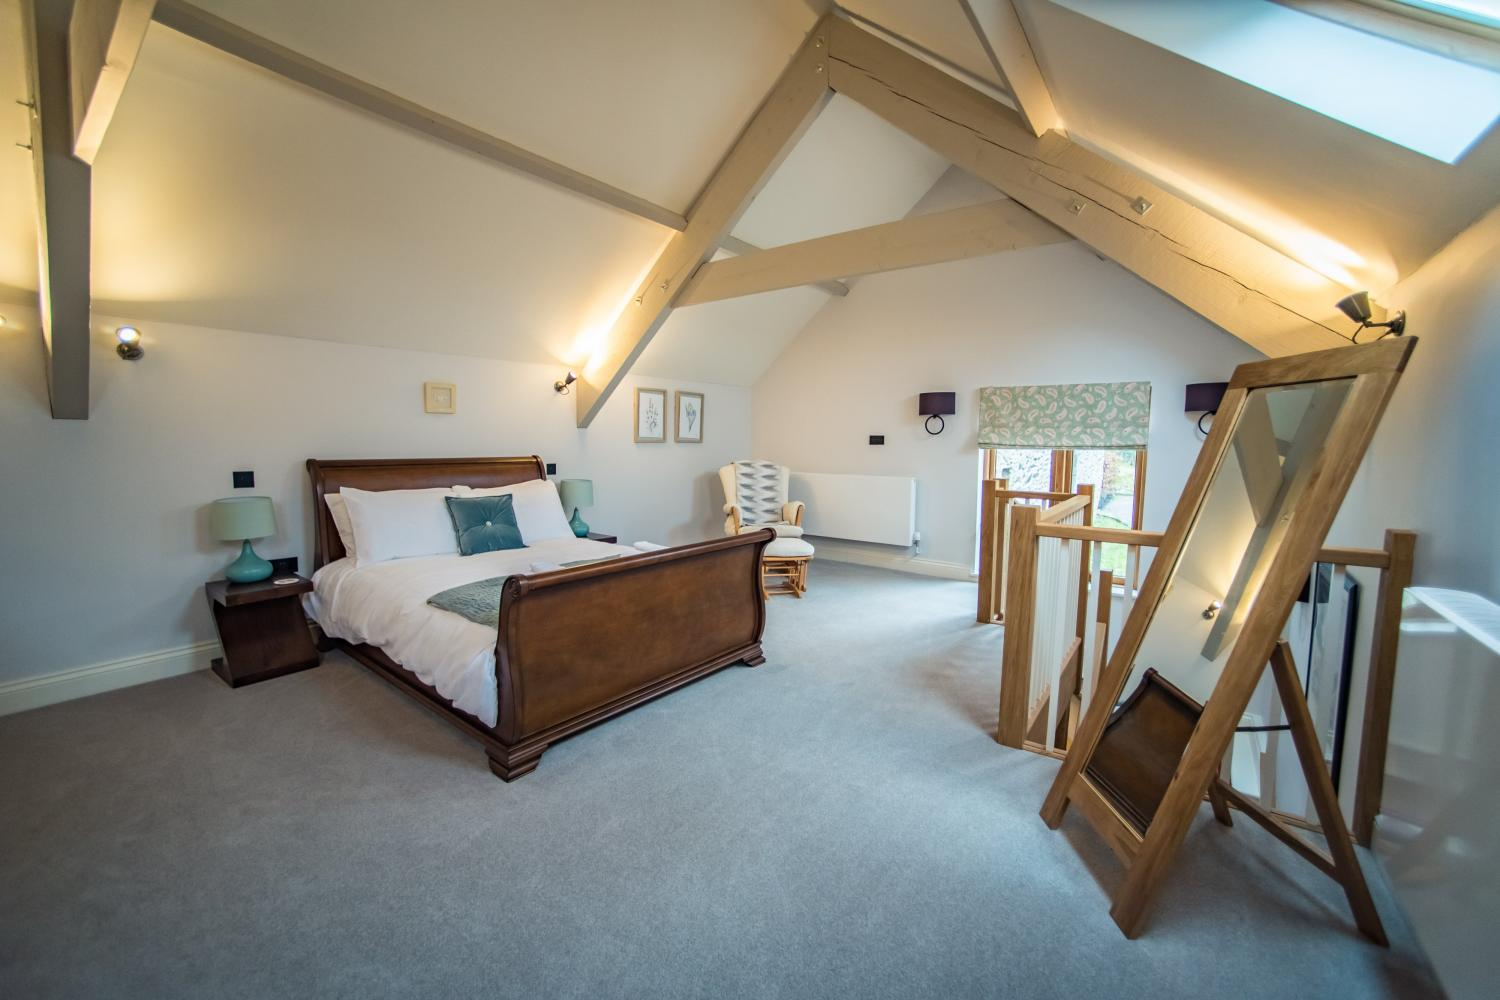 The Cow Shed spacious luxury bedroom